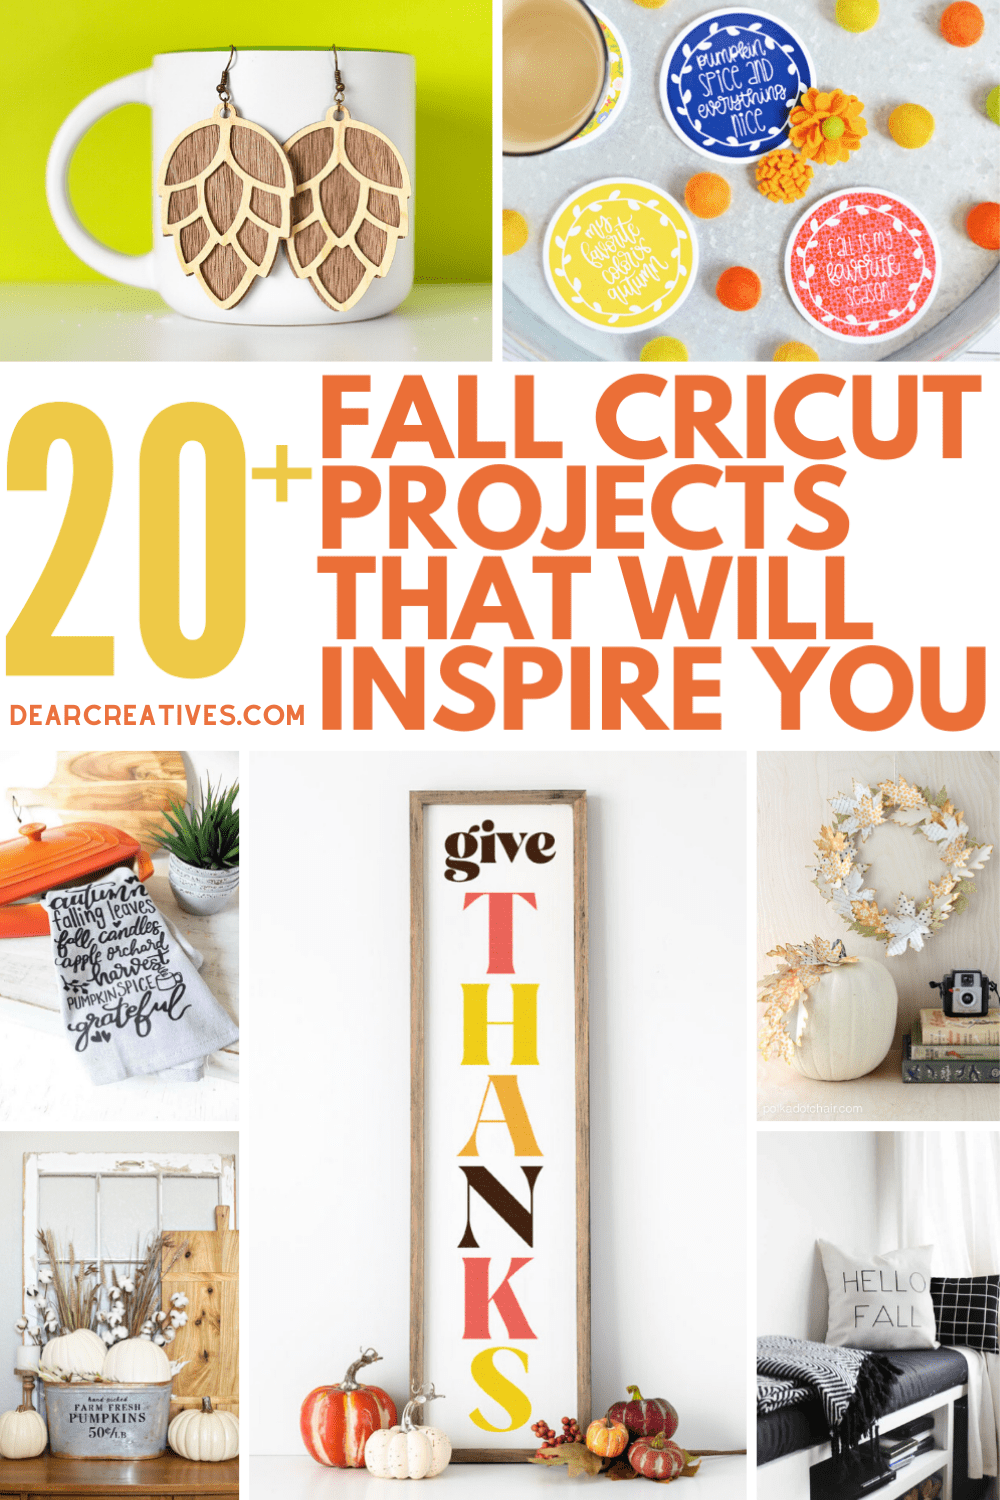 Fall Cricut Projects 20+ Ideas That Will Inspire You!